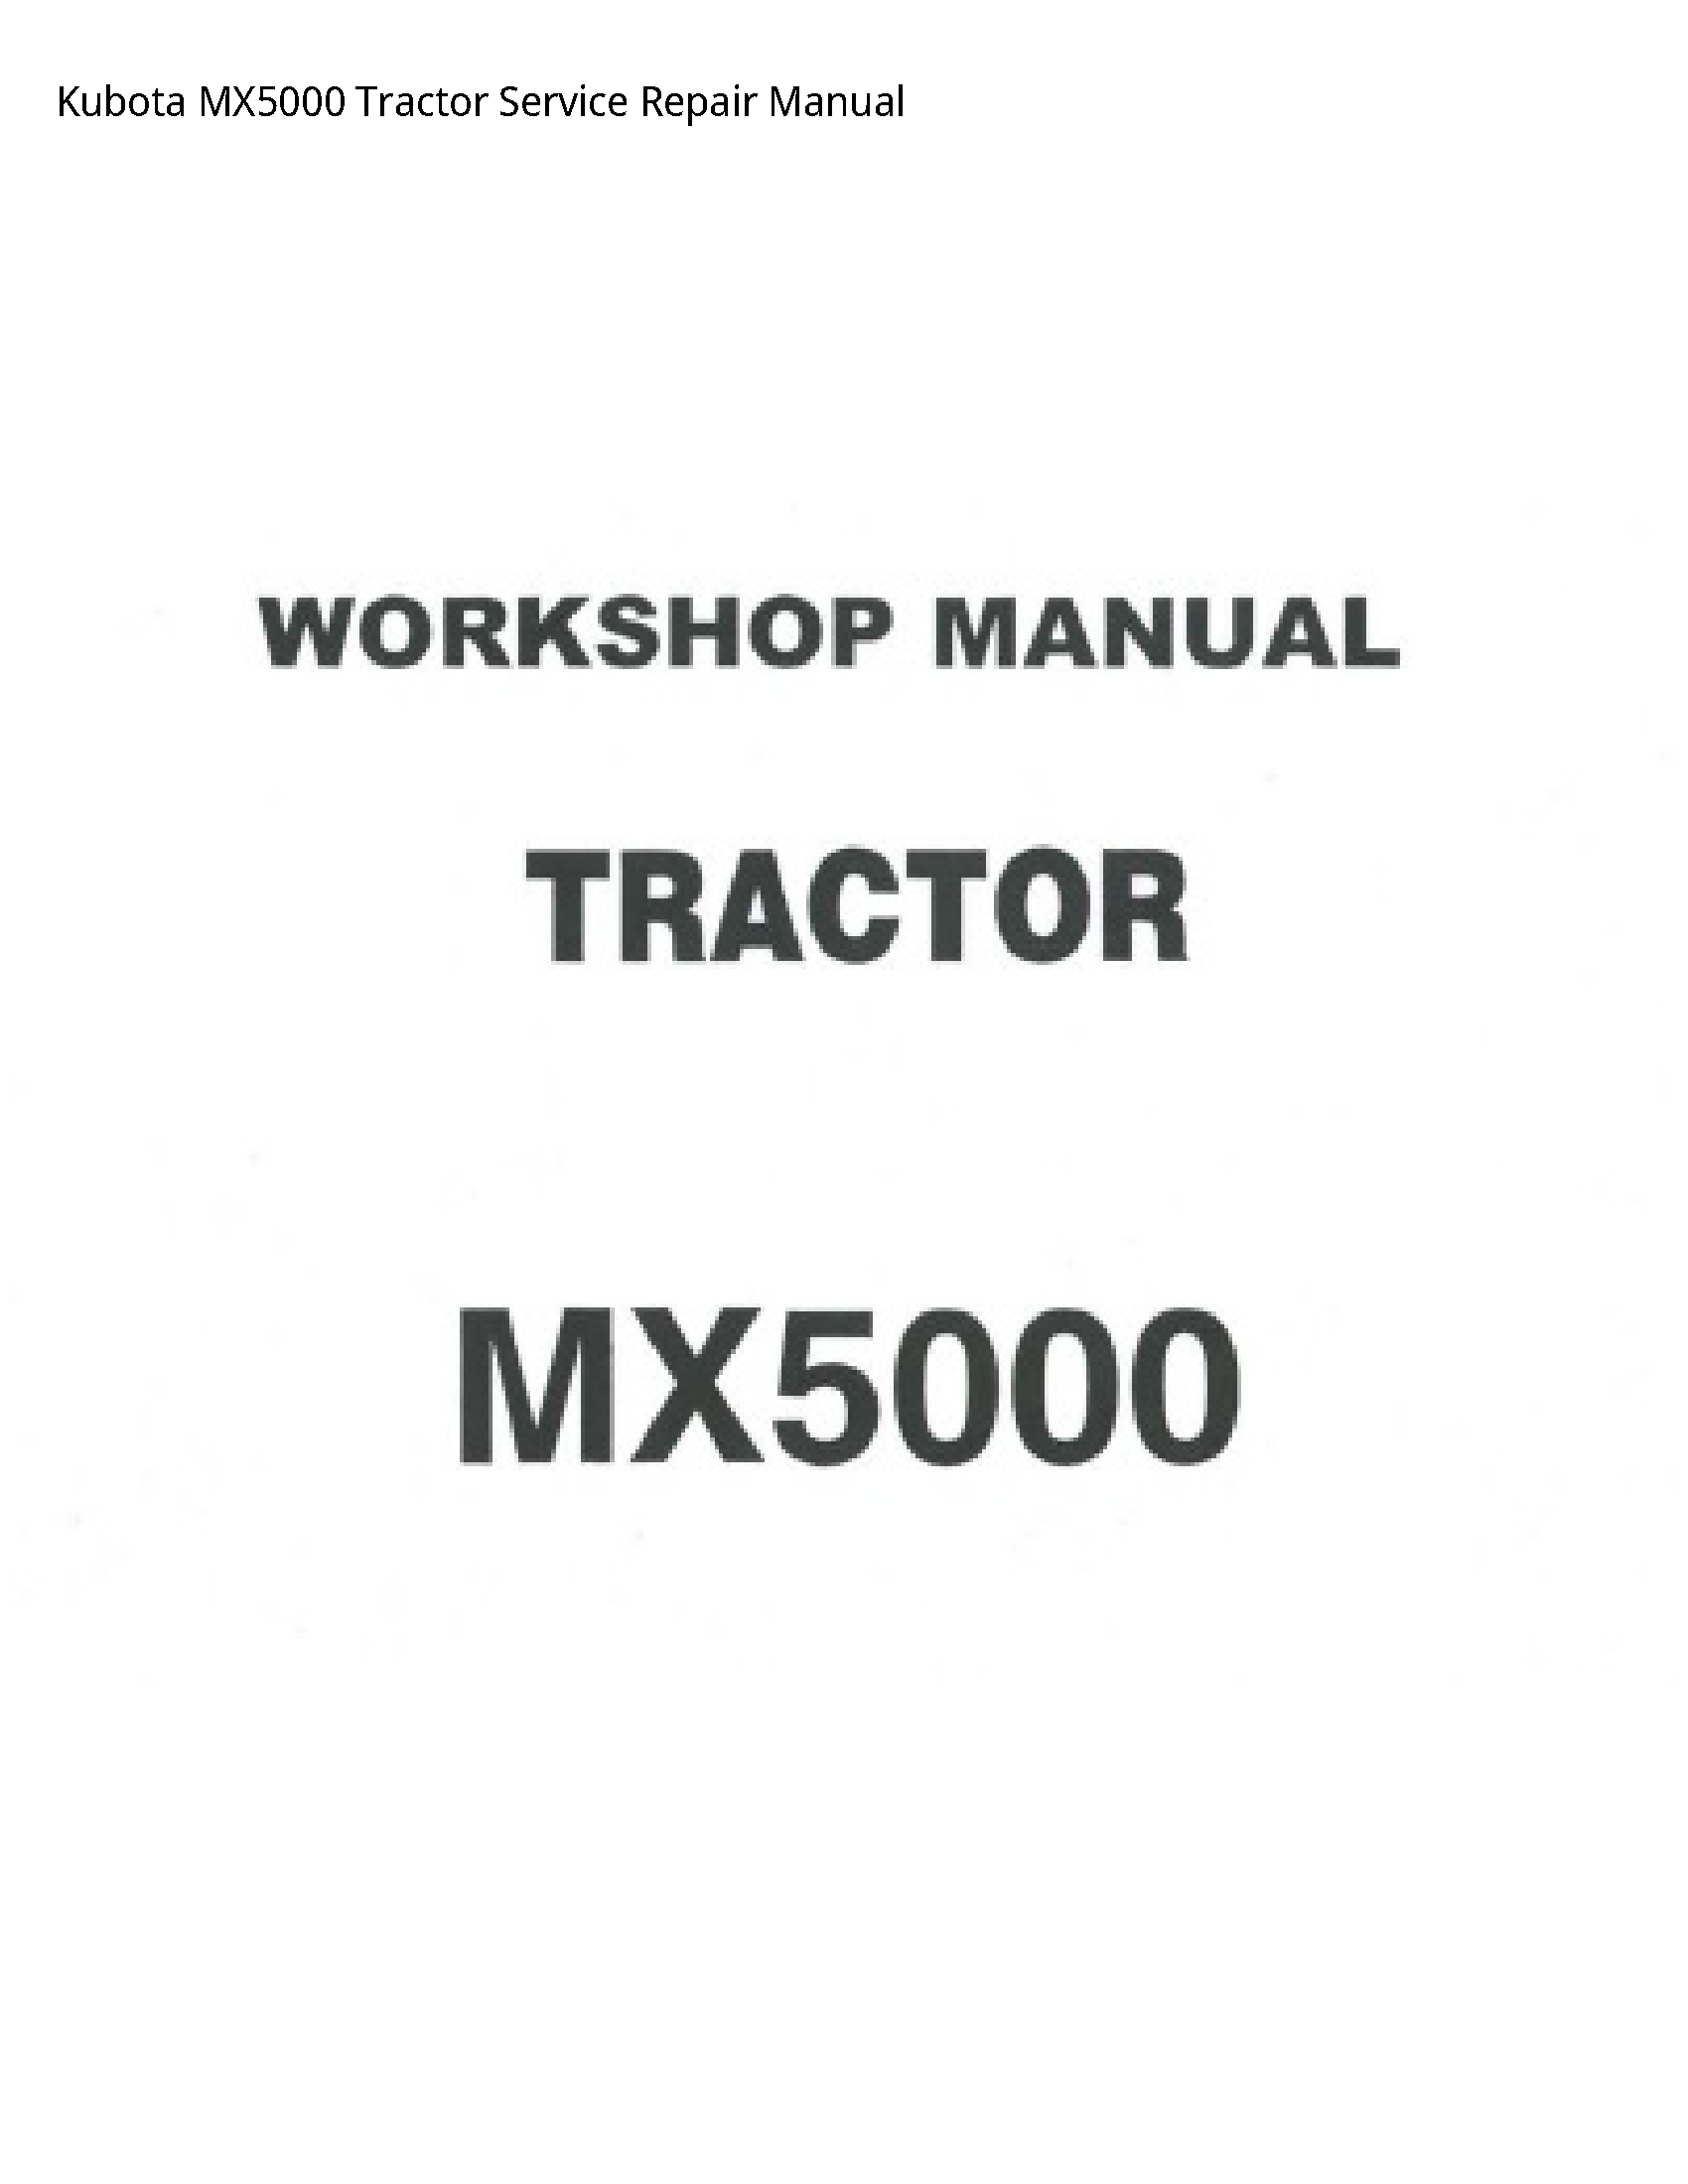 Kubota MX5000 Tractor manual